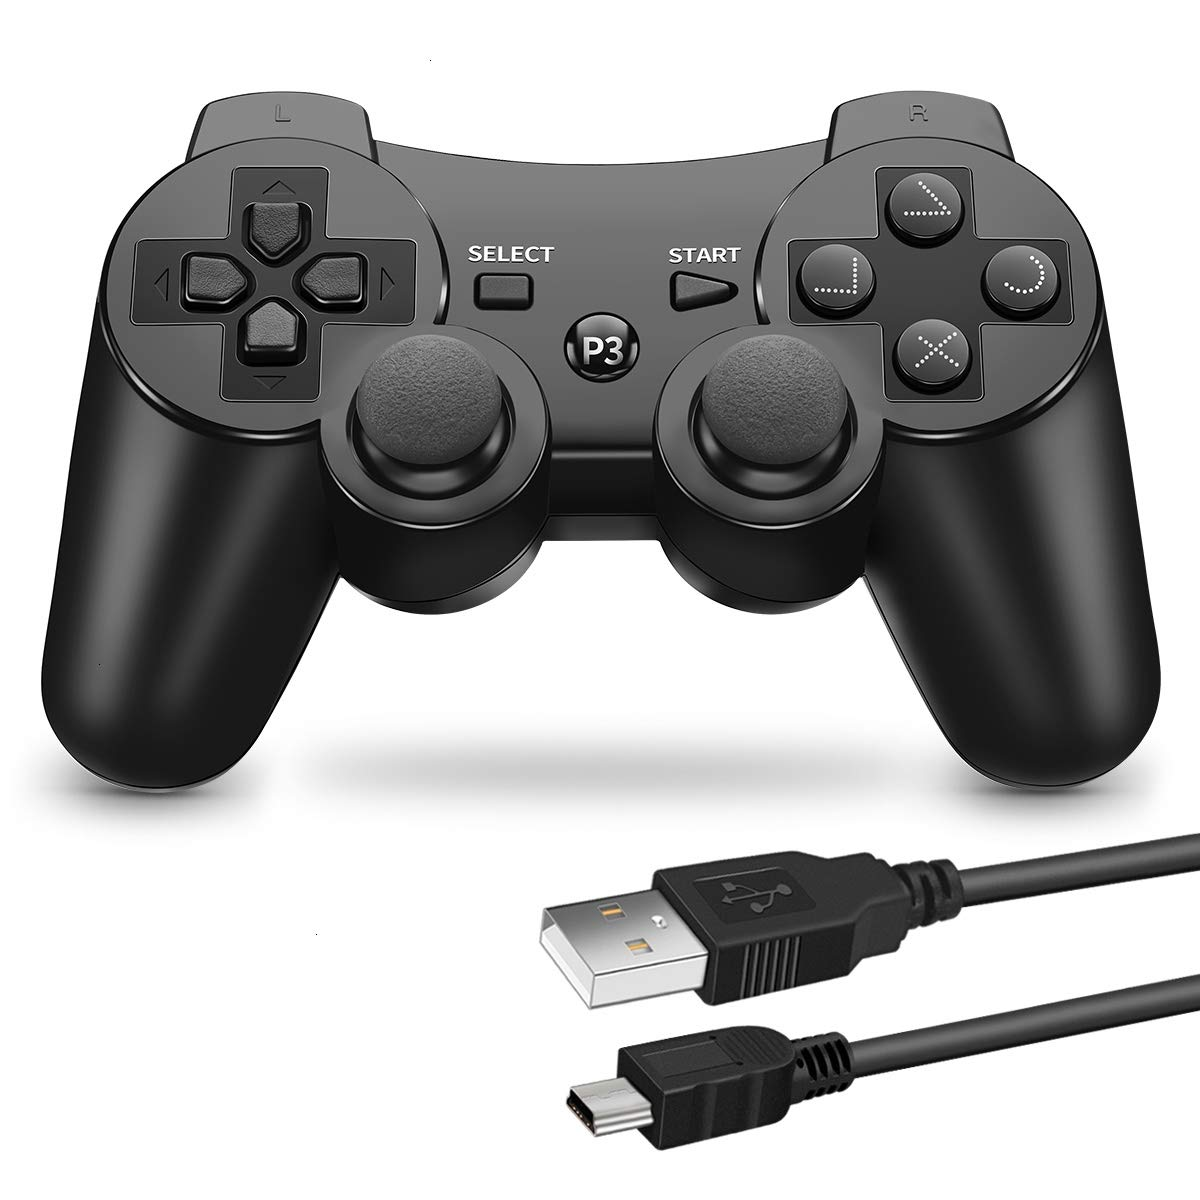 VOYEE PS3 Controller Wireless - Rechargable Remote Control/Gamepad with Charger Cable Compatible with Playstation 3 (Black)